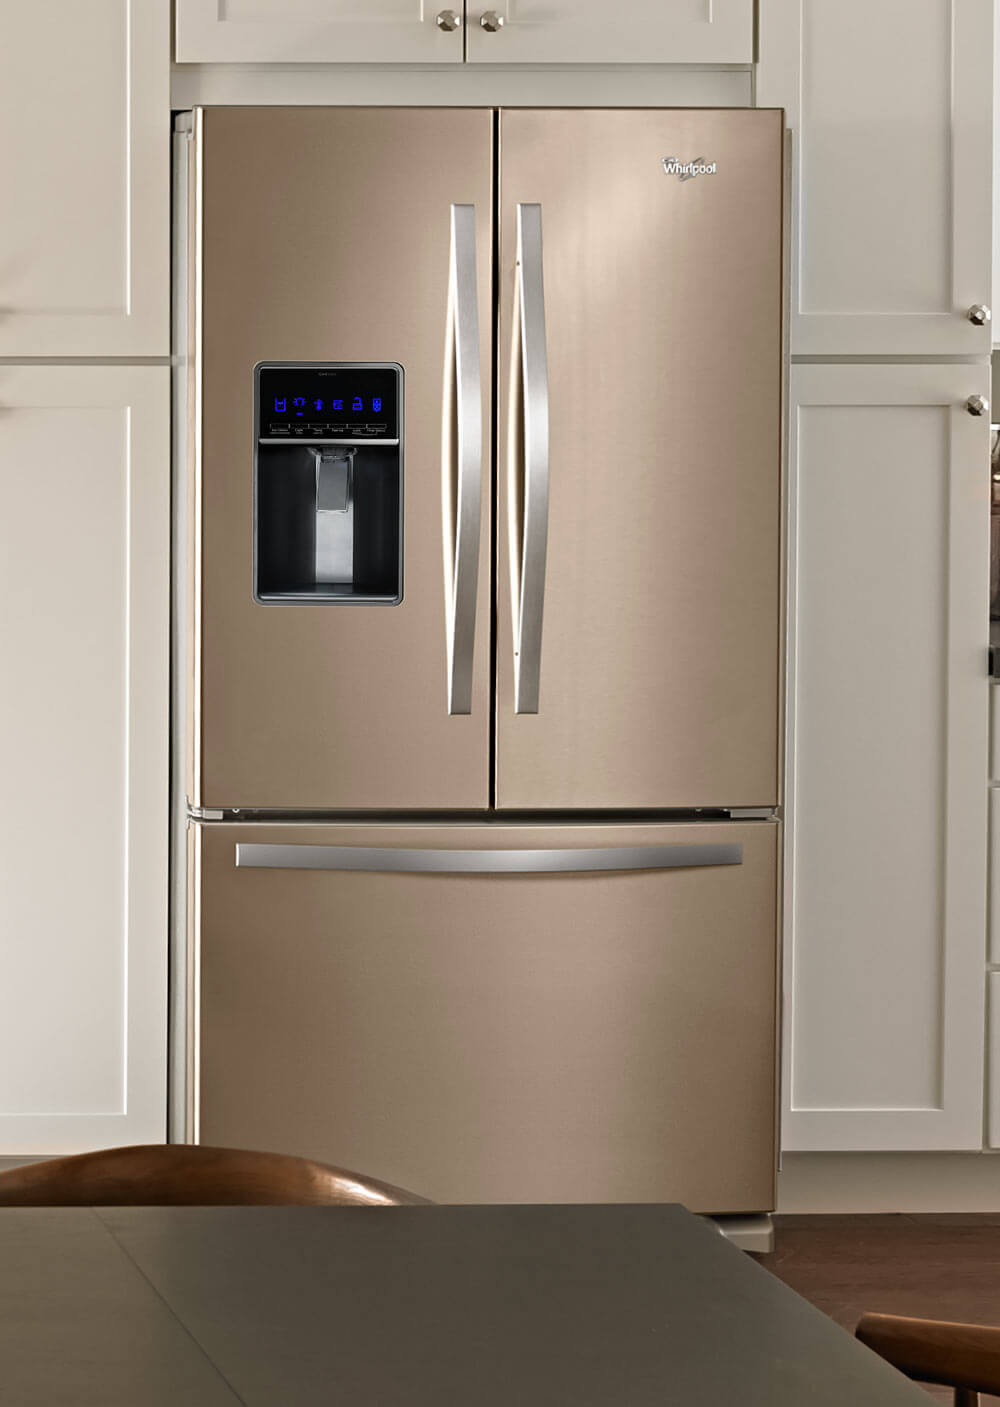 Whirlpool Sunset Bronze kitchen appliances: Would you? - Retro ...